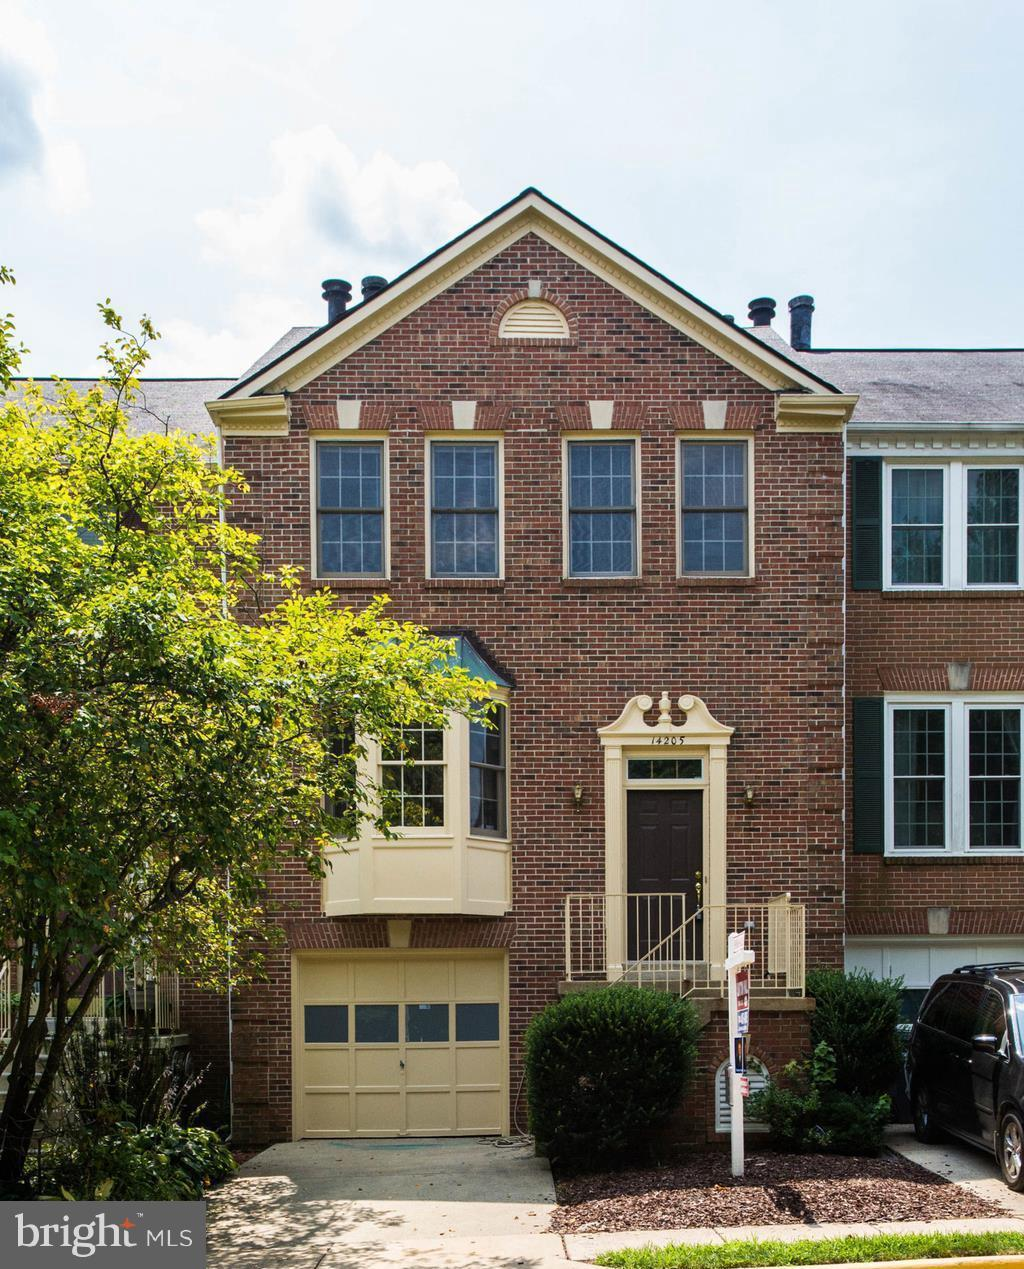 14205 BELT BUCKLE COURT, CENTREVILLE, VA 20121